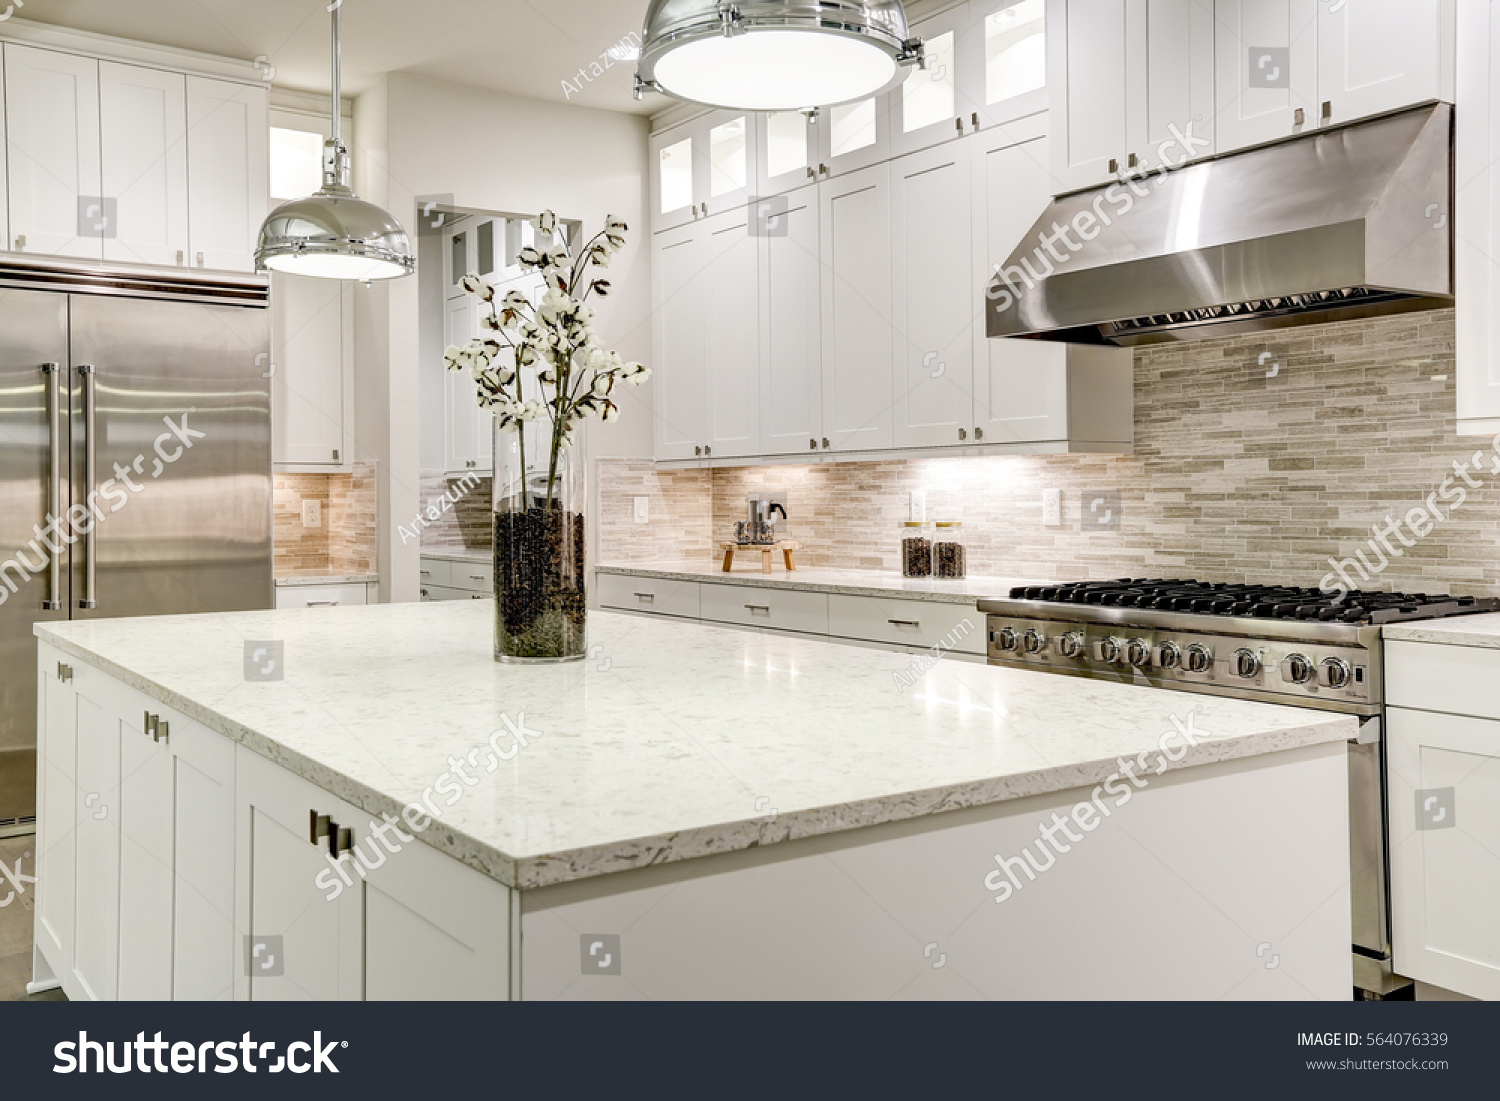 Gourmet kitchen features white shaker cabinets stock photo for Gourmet kitchen